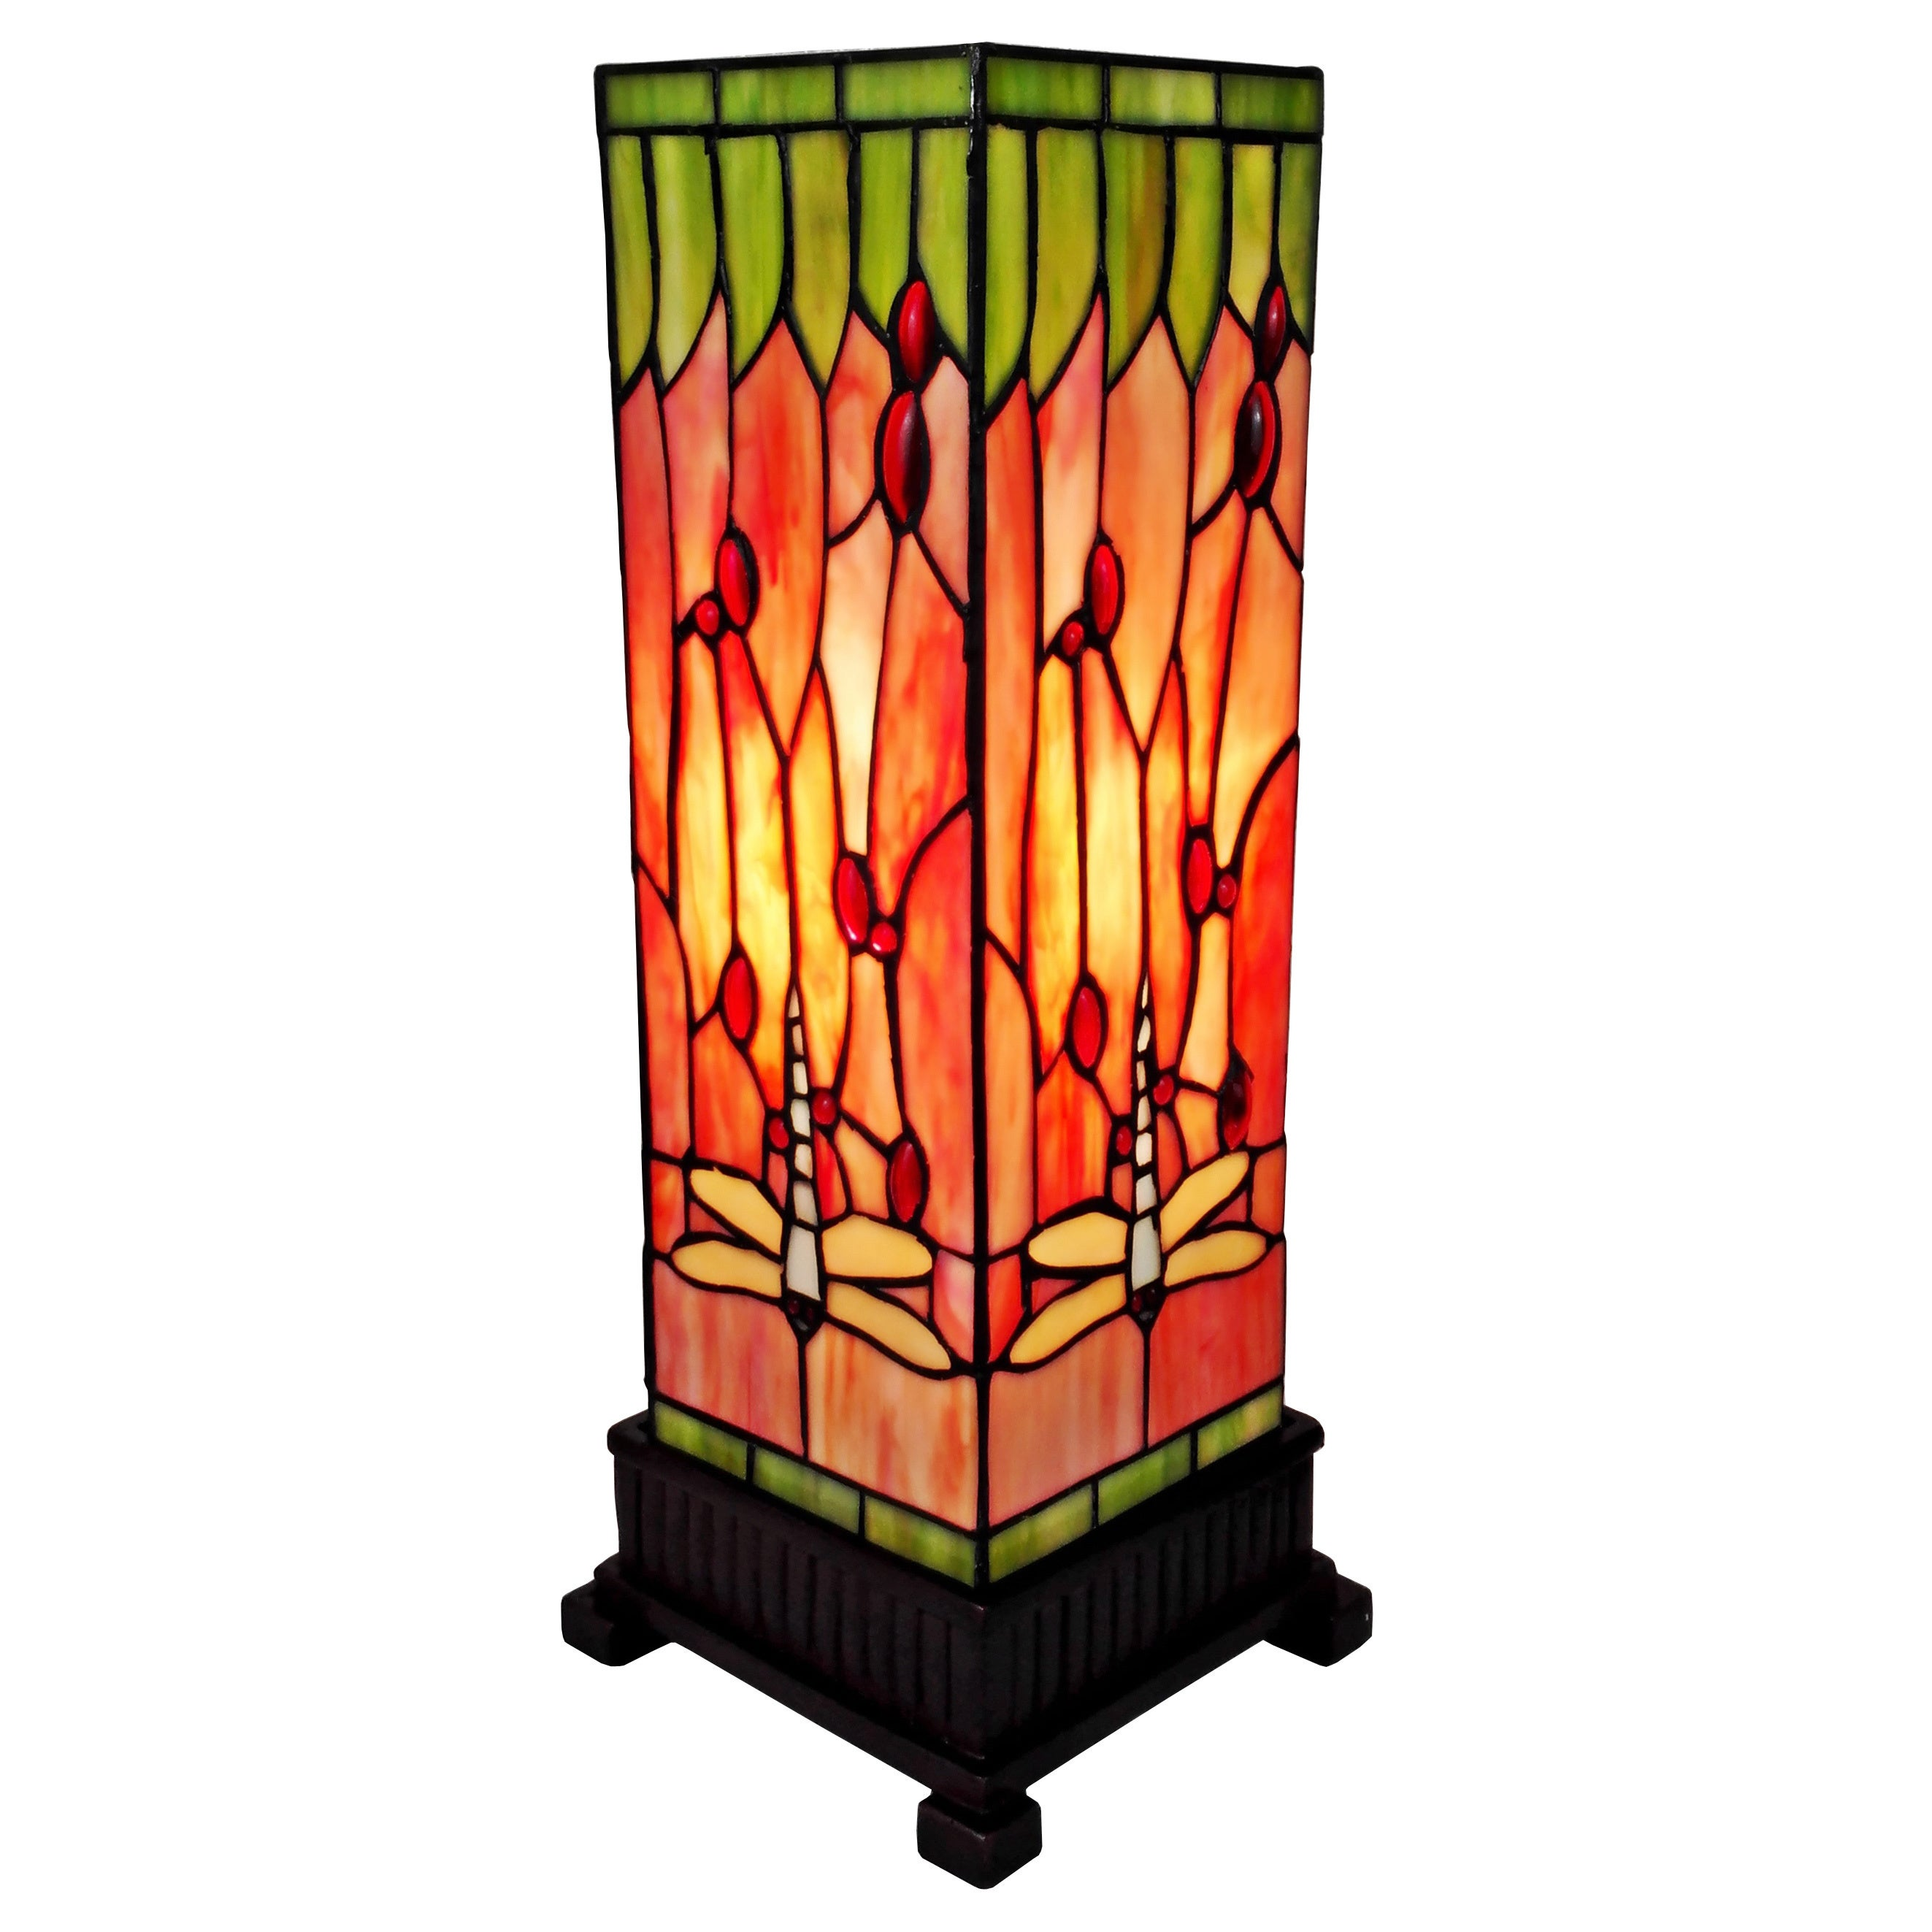 Shop Amora Lighting Tiffany Style Dragonfly Table L& - Free Shipping Today - Overstock.com - 10398736  sc 1 st  Overstock.com & Shop Amora Lighting Tiffany Style Dragonfly Table Lamp - Free ...